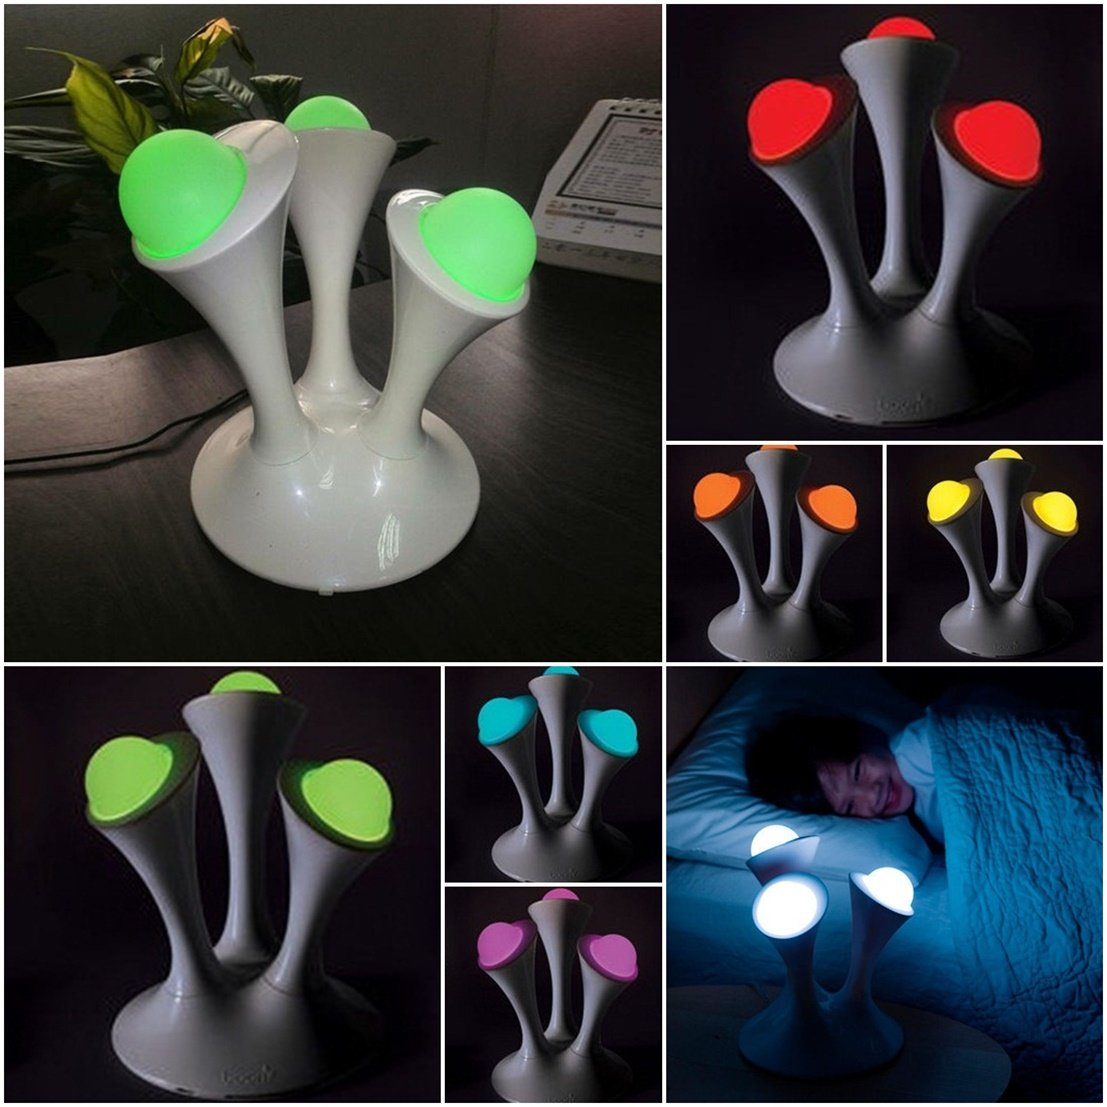 1Pc Paradisiacal Popular 7 Color Changing LED Nightlight Removable Balls Multicolor Style Kids Toy Light Colorful